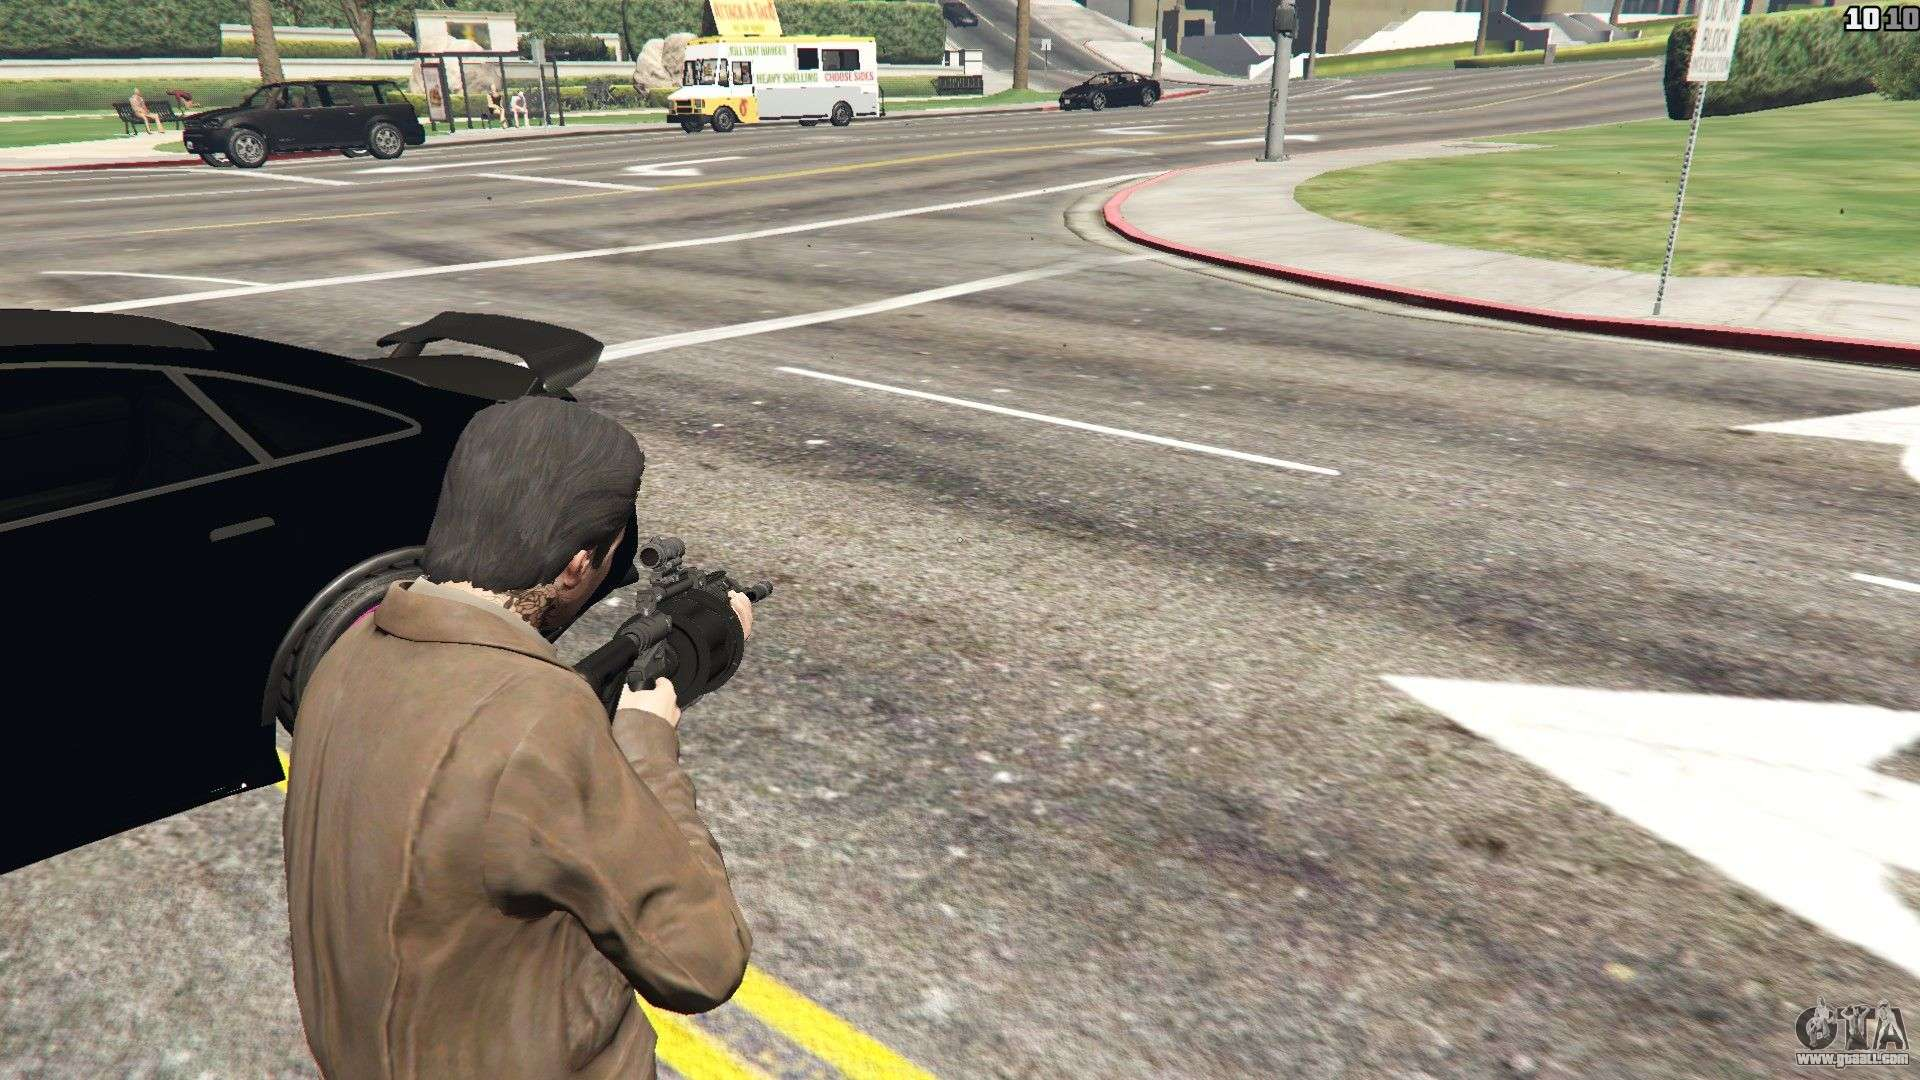 Extreme Low End PC Settings (512Mb VRAM) FINAL for GTA 5